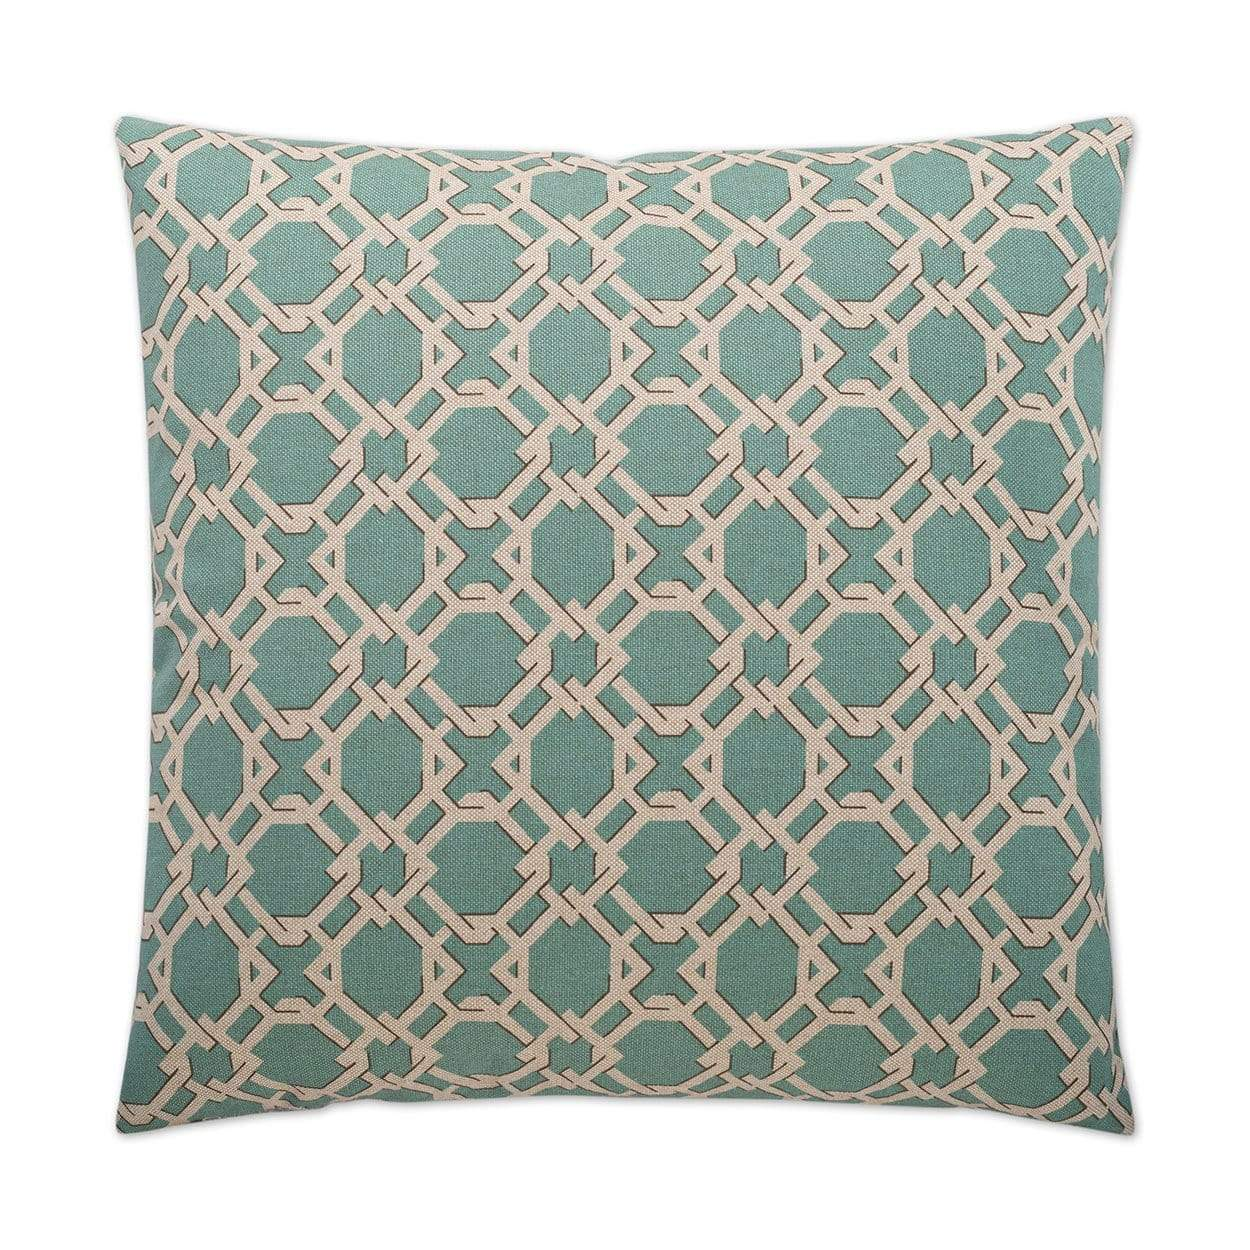 D.V. Kap D.V. Kap Keenland Pillow - Available in 2 Colors Blue 2208-B